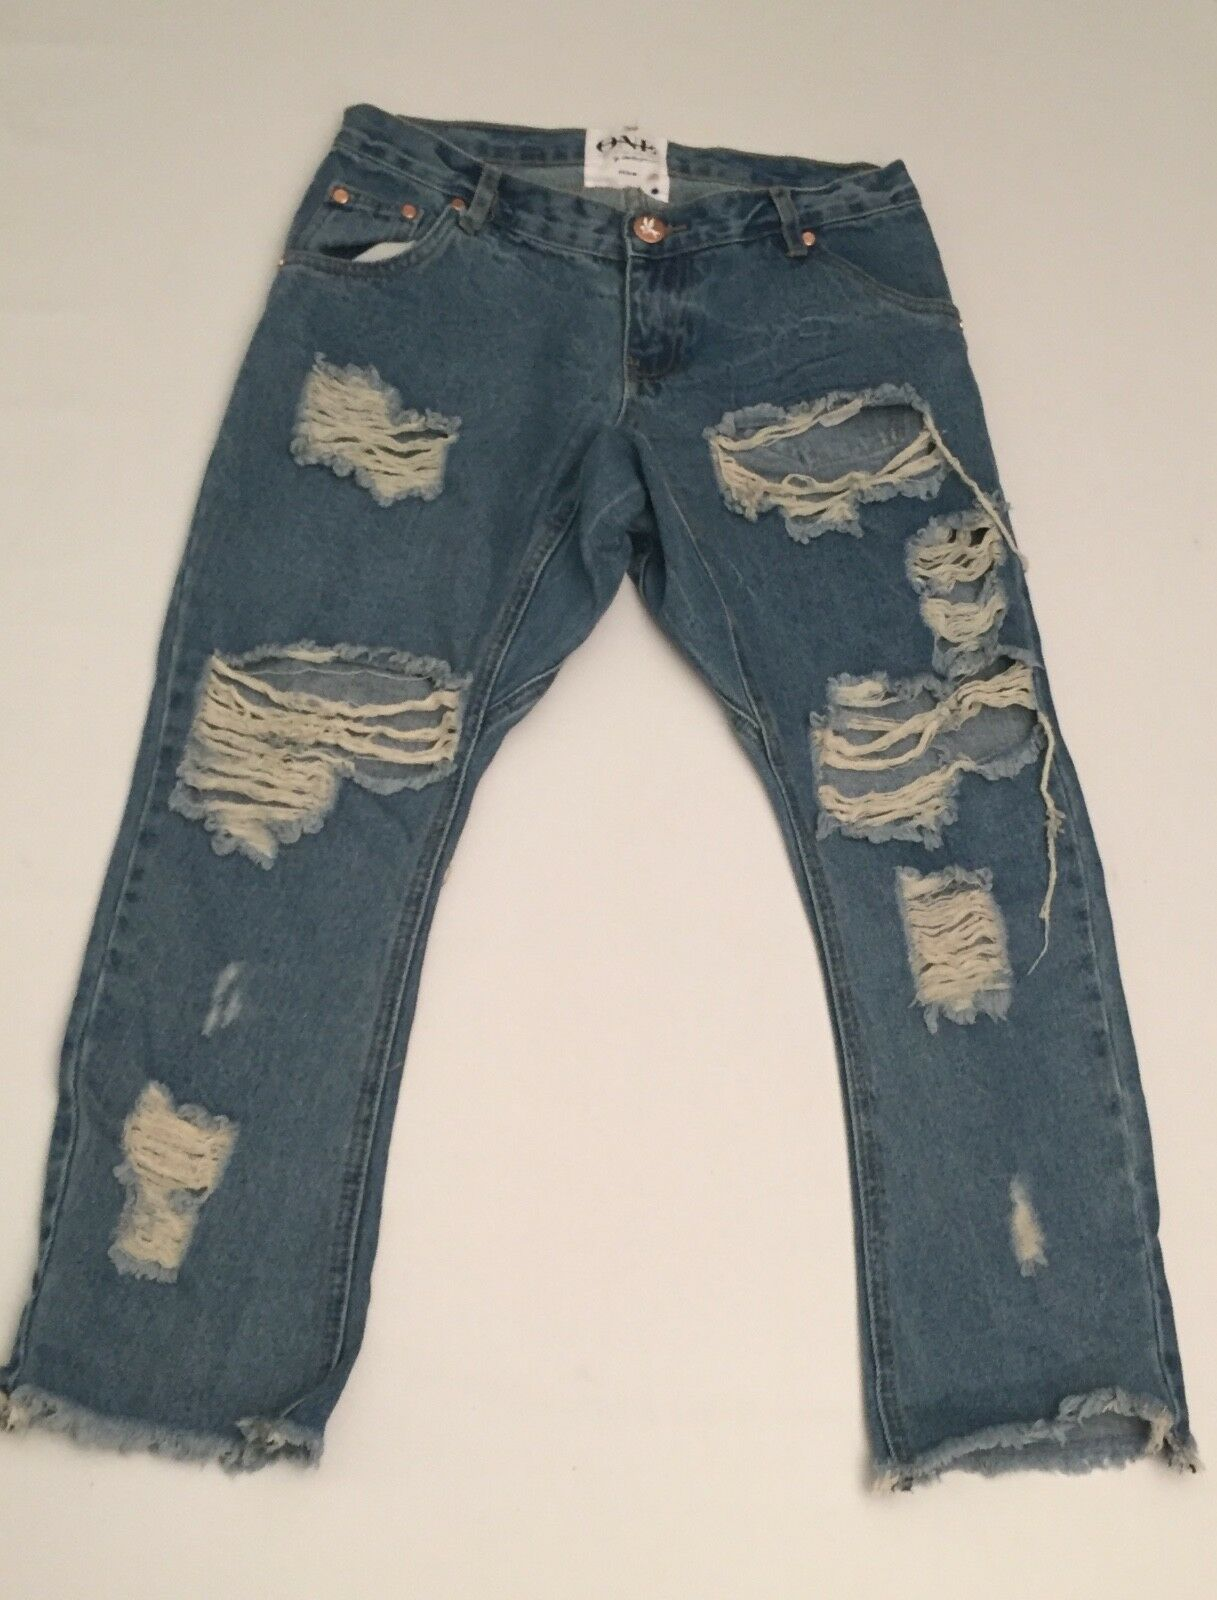 ONE by One Teaspoon Destroyed Boyfriend Lonely Boy bluee Denim Jeans Sz 24 27